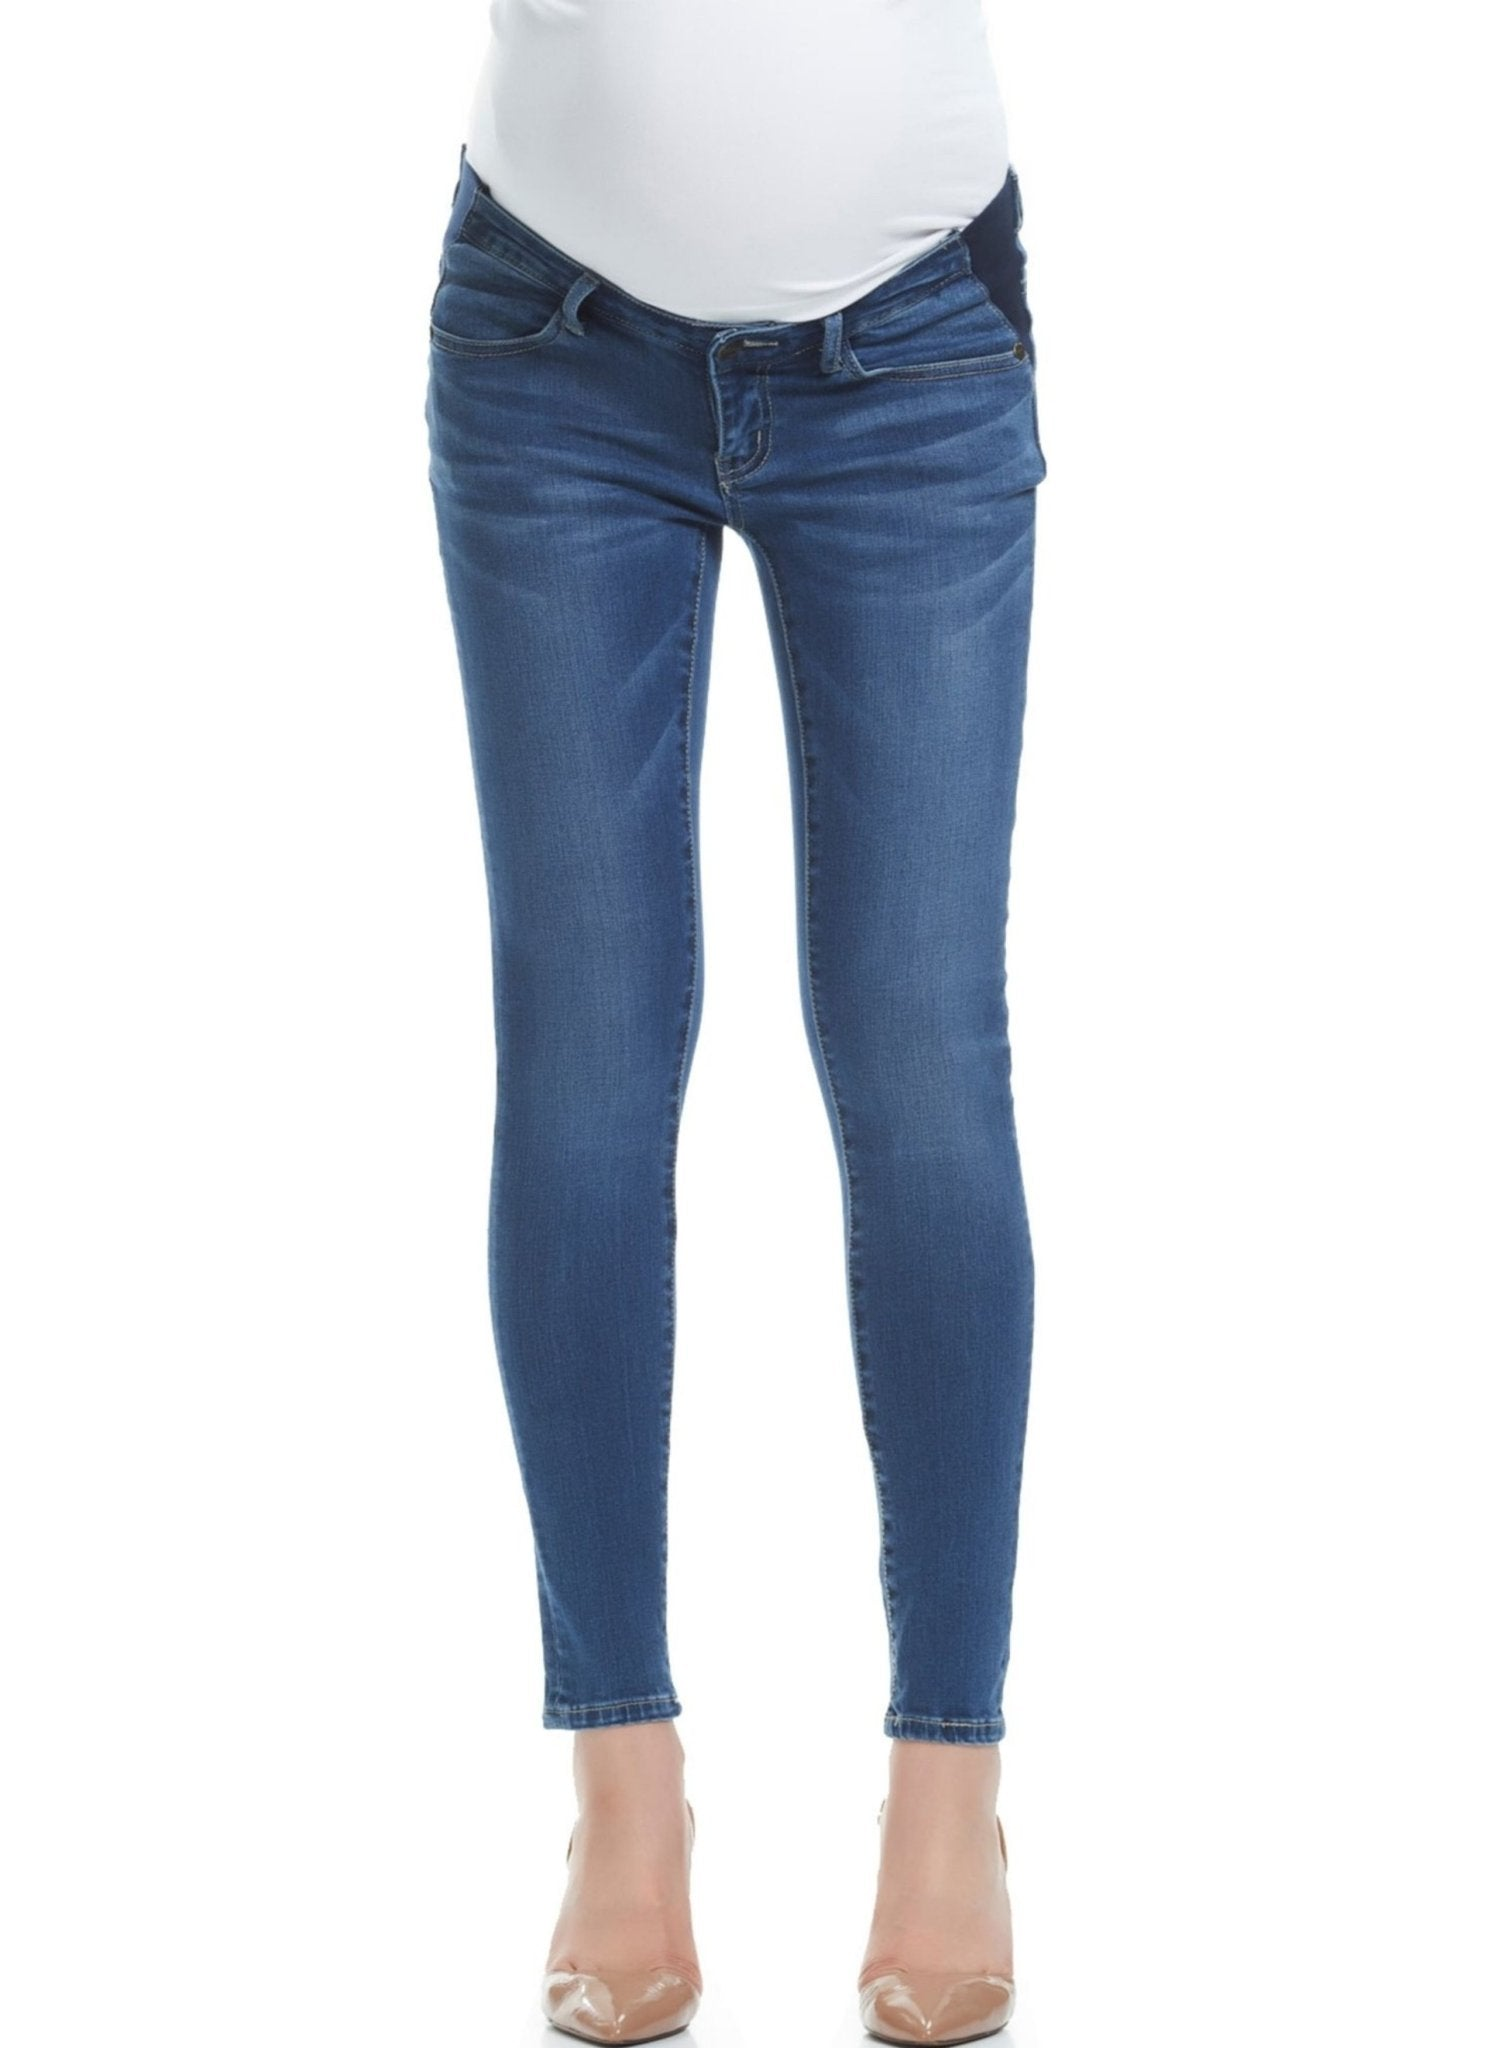 Esme Skinny Crop Maternity ِJeans - Mums and Bumps